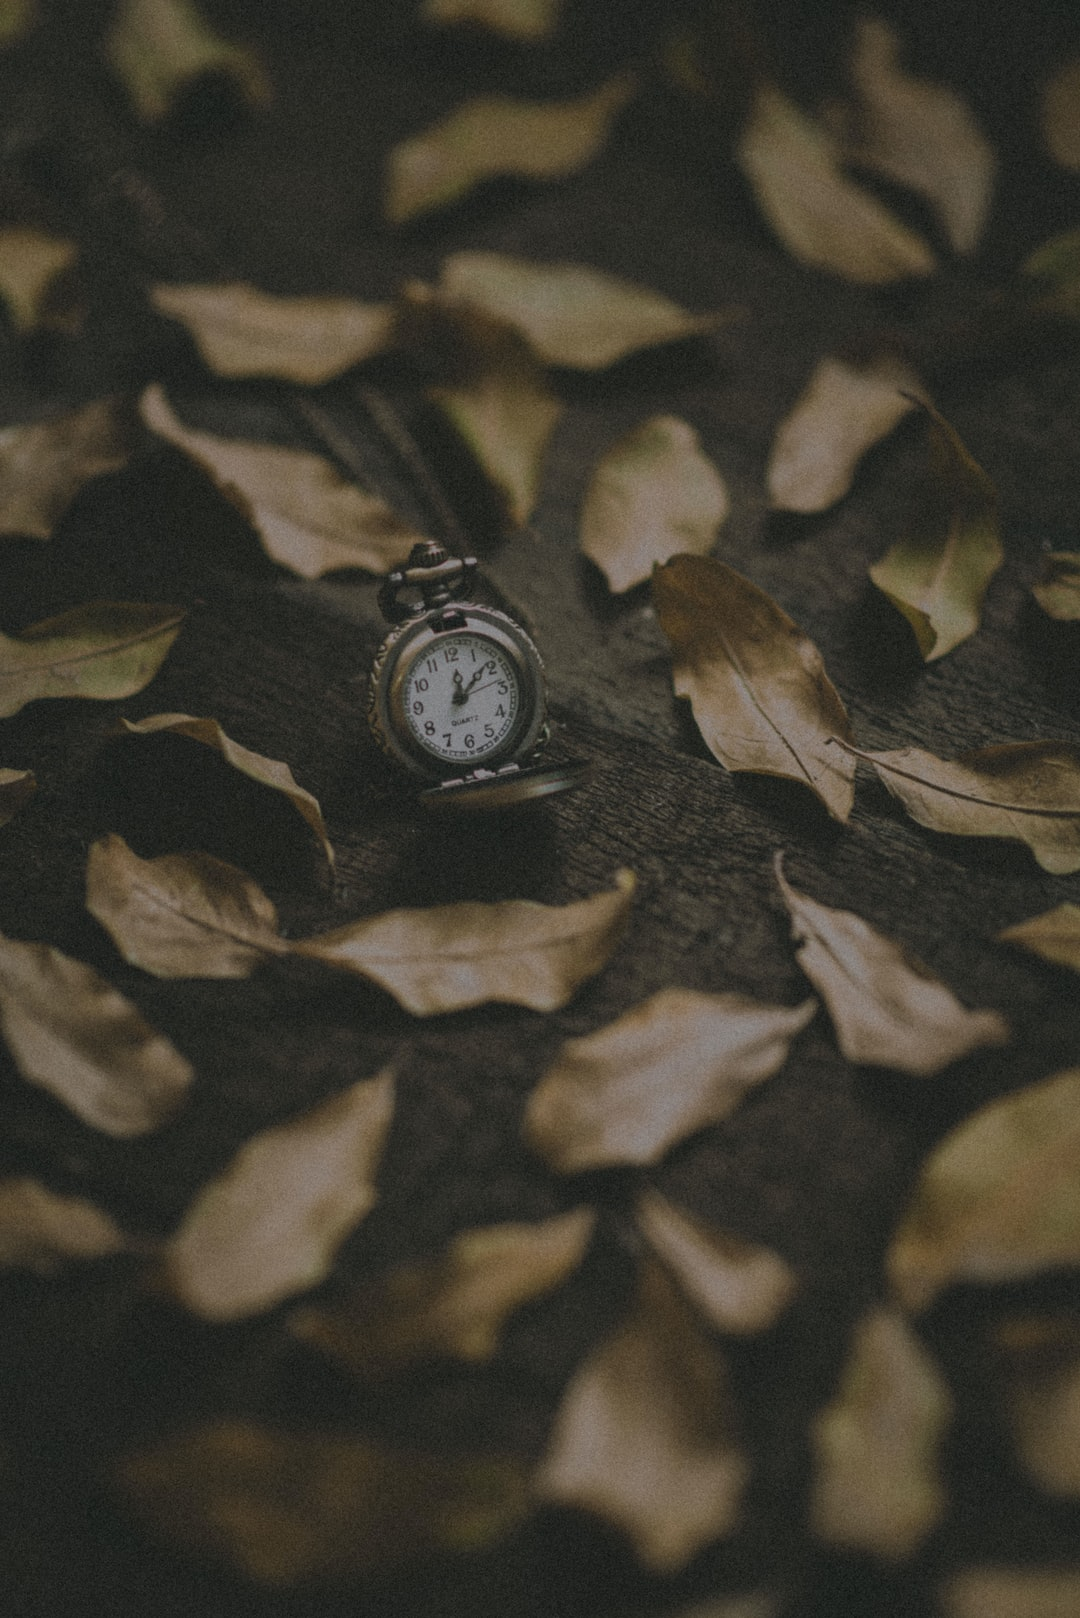 round silver-colored pocket watch at 12:09